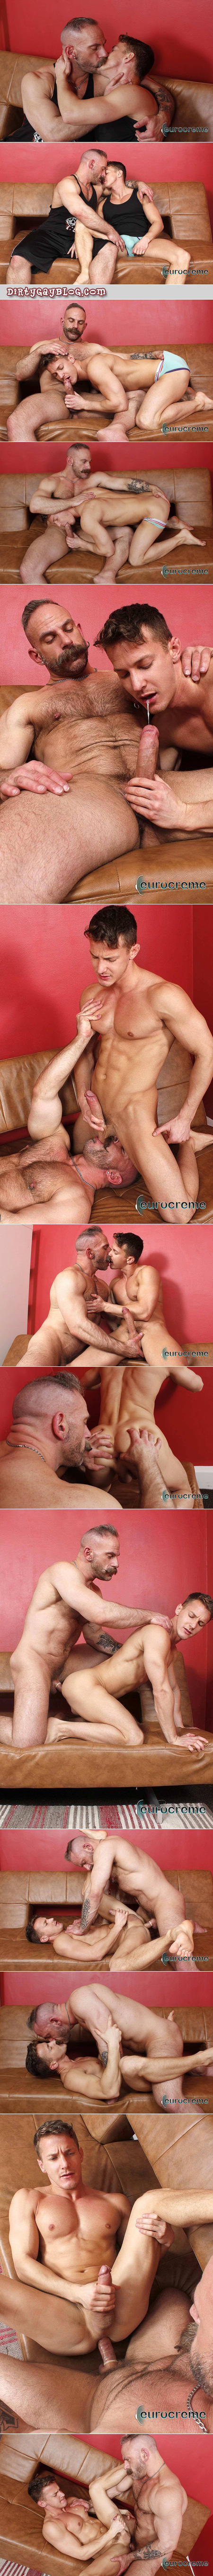 Mustachioed muscle Daddy fucks a smooth muscular hung young British guy.